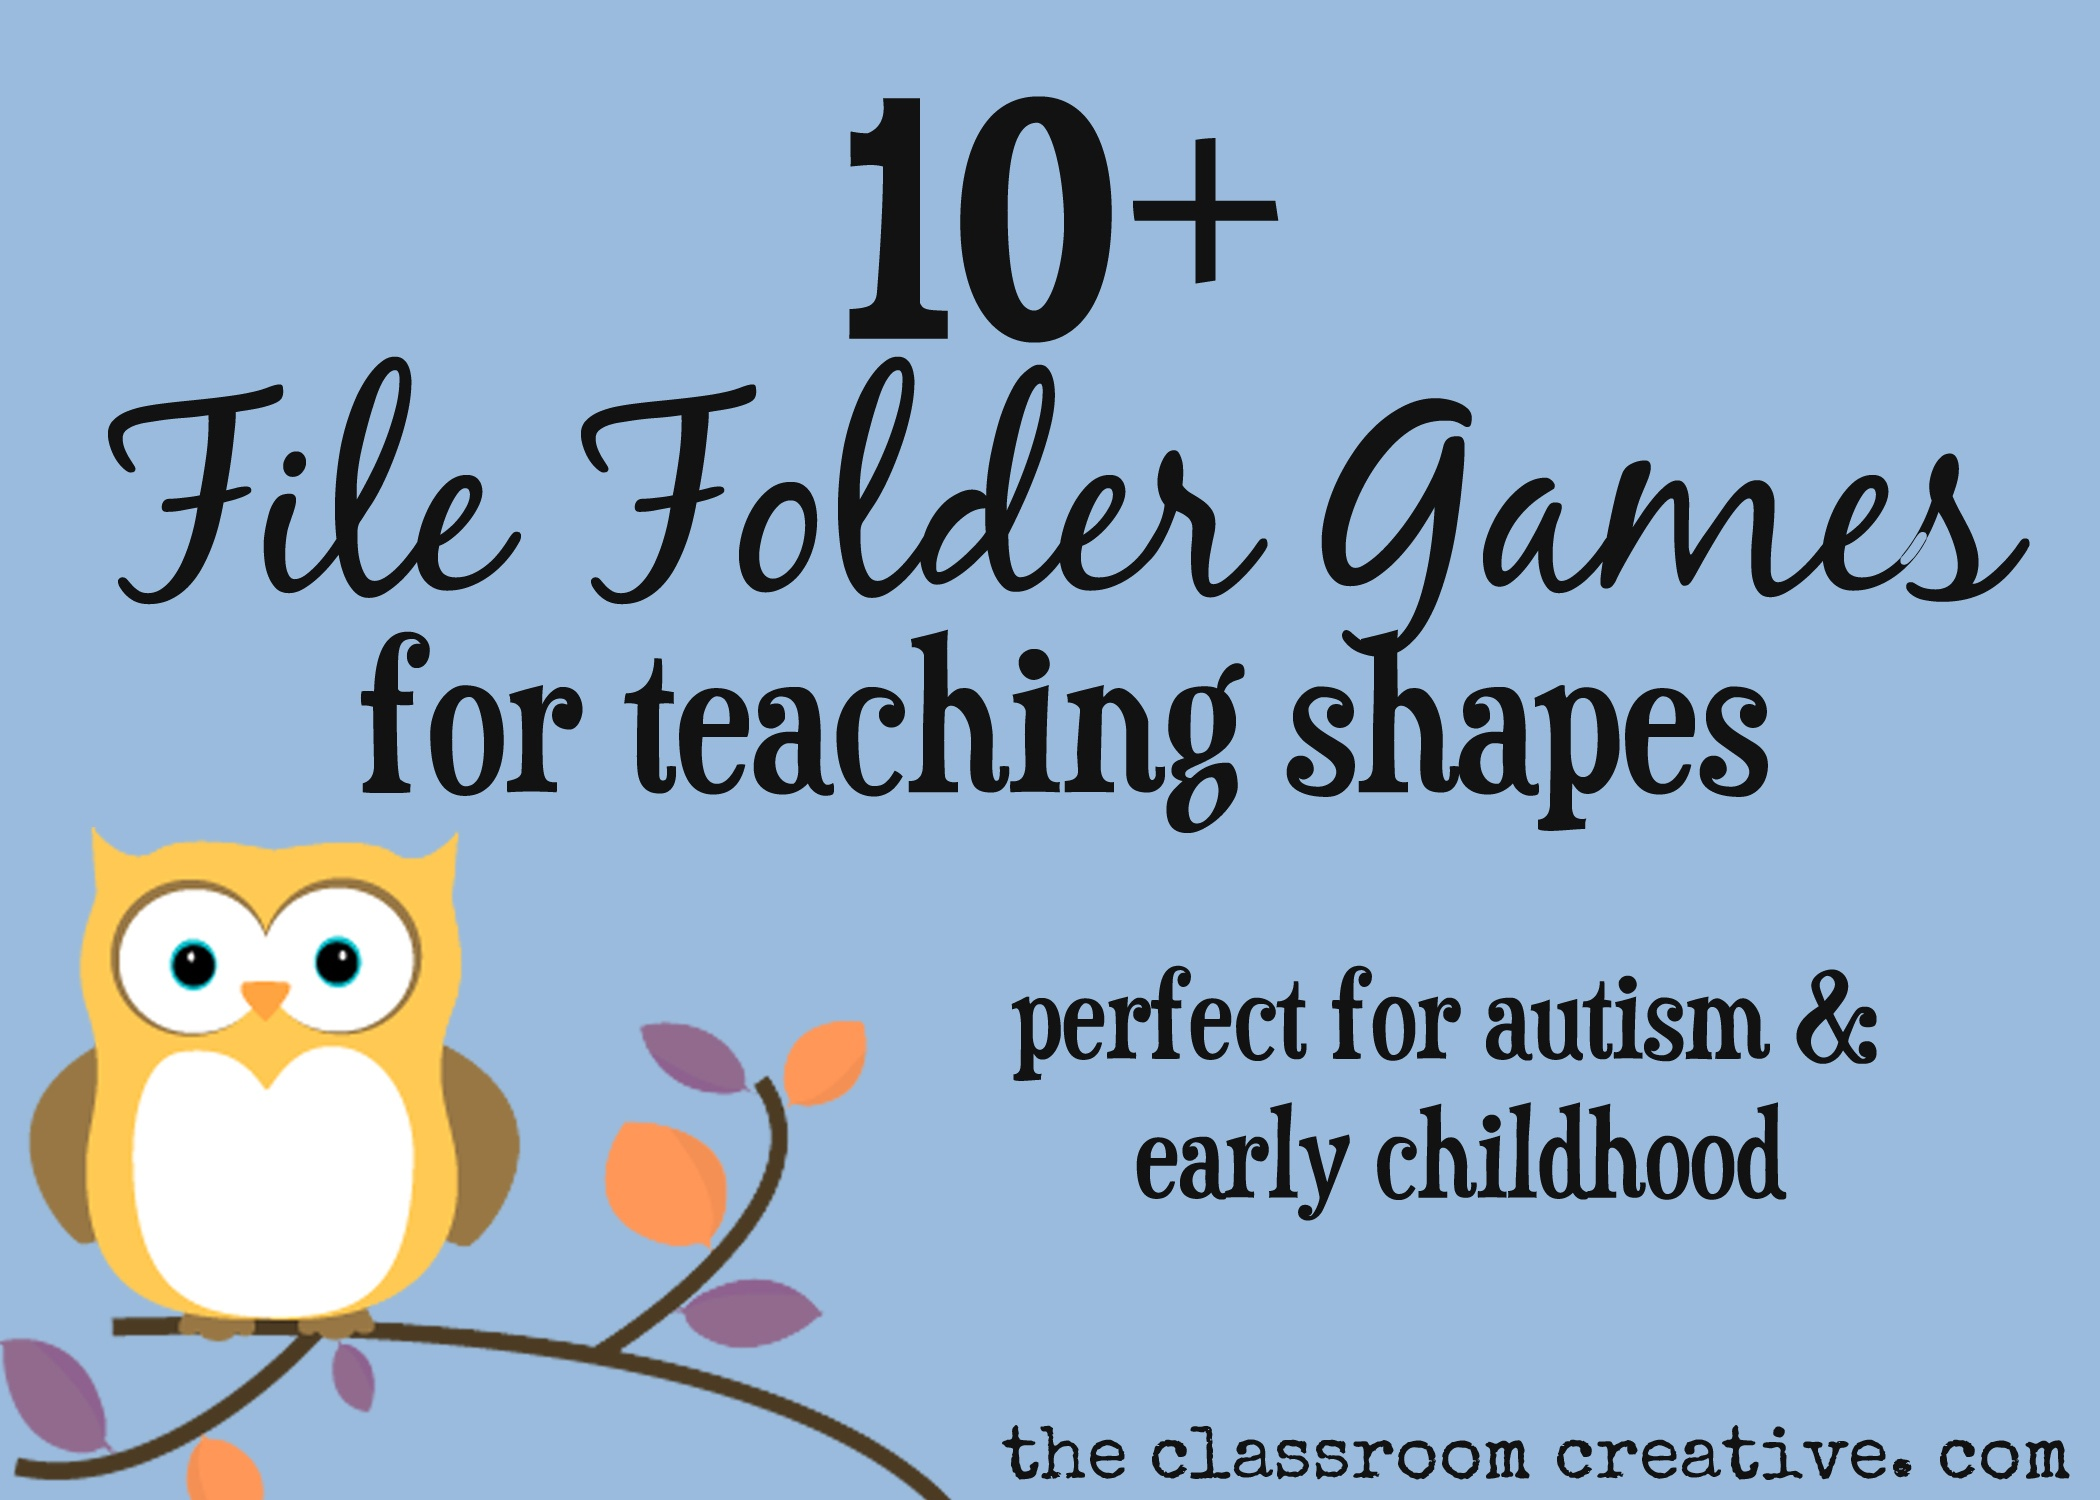 File Folder Games For Teaching Shapes - File Folder Games For Toddlers Free Printable